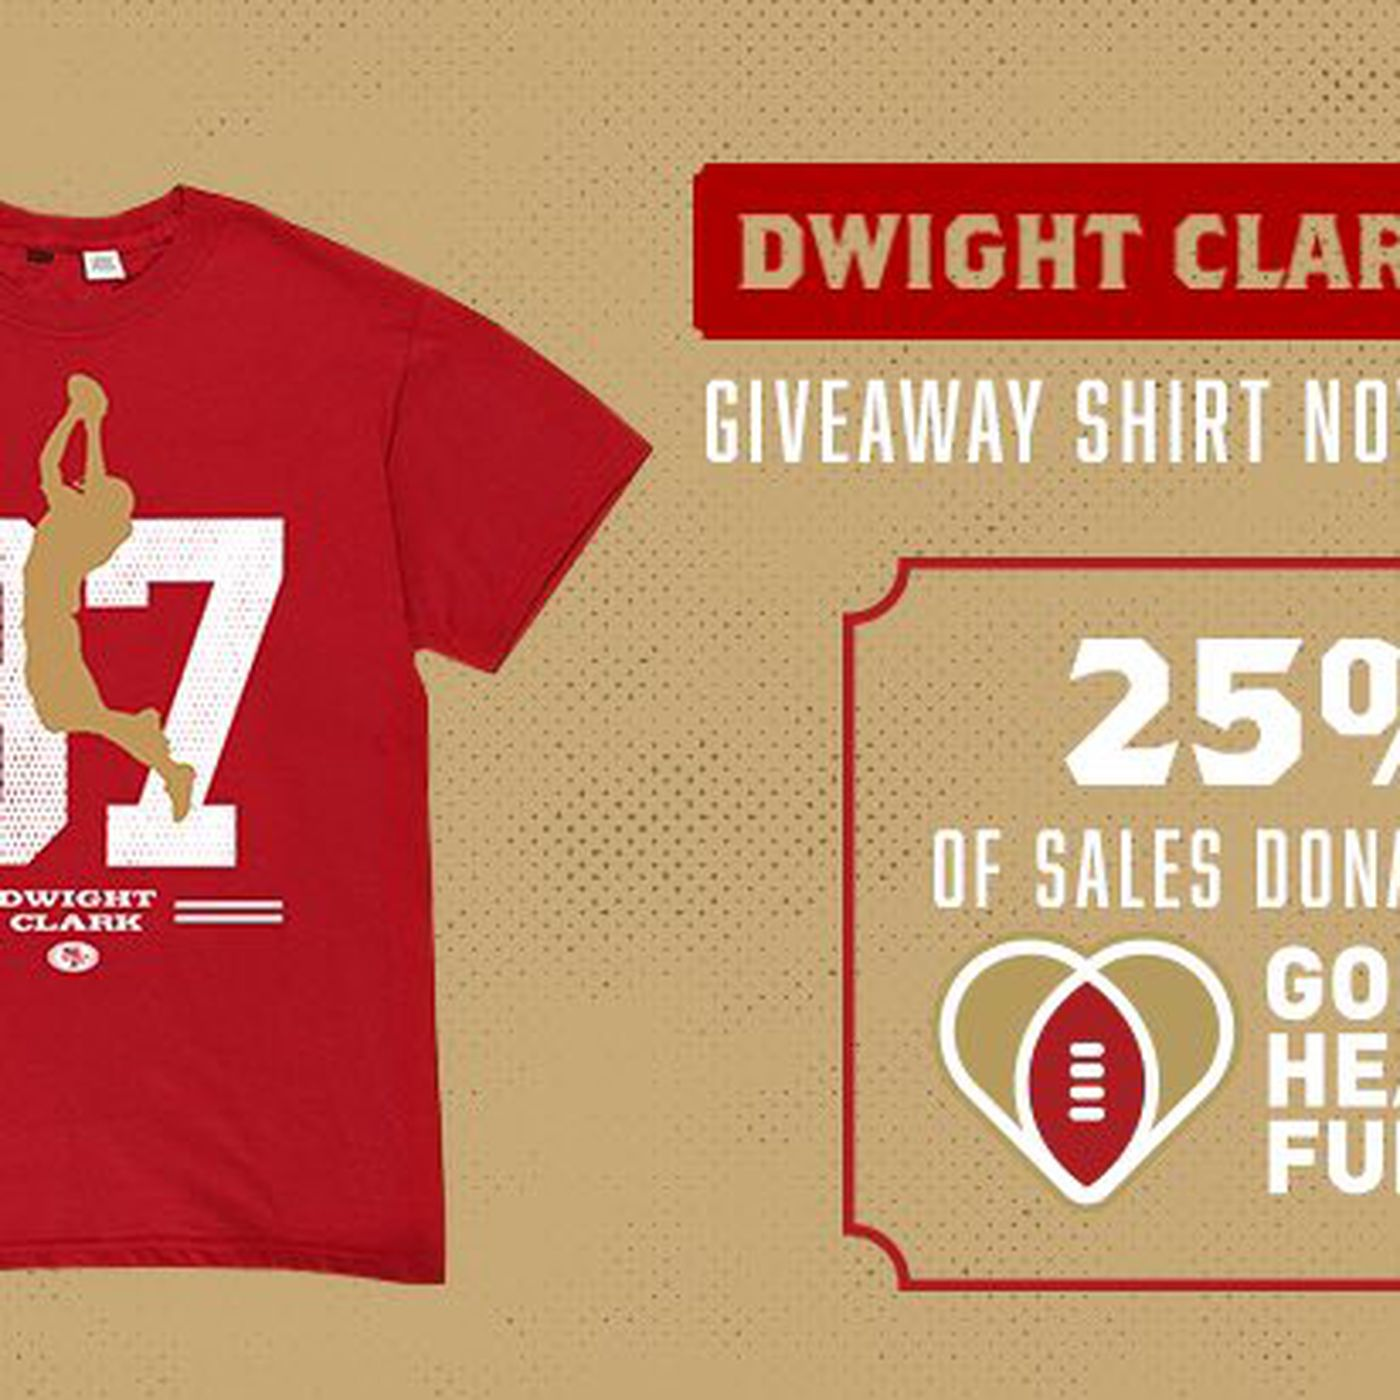 new style 6829a 34a68 49ers offering Dwight Clark t-shirt for sale, with proceeds ...